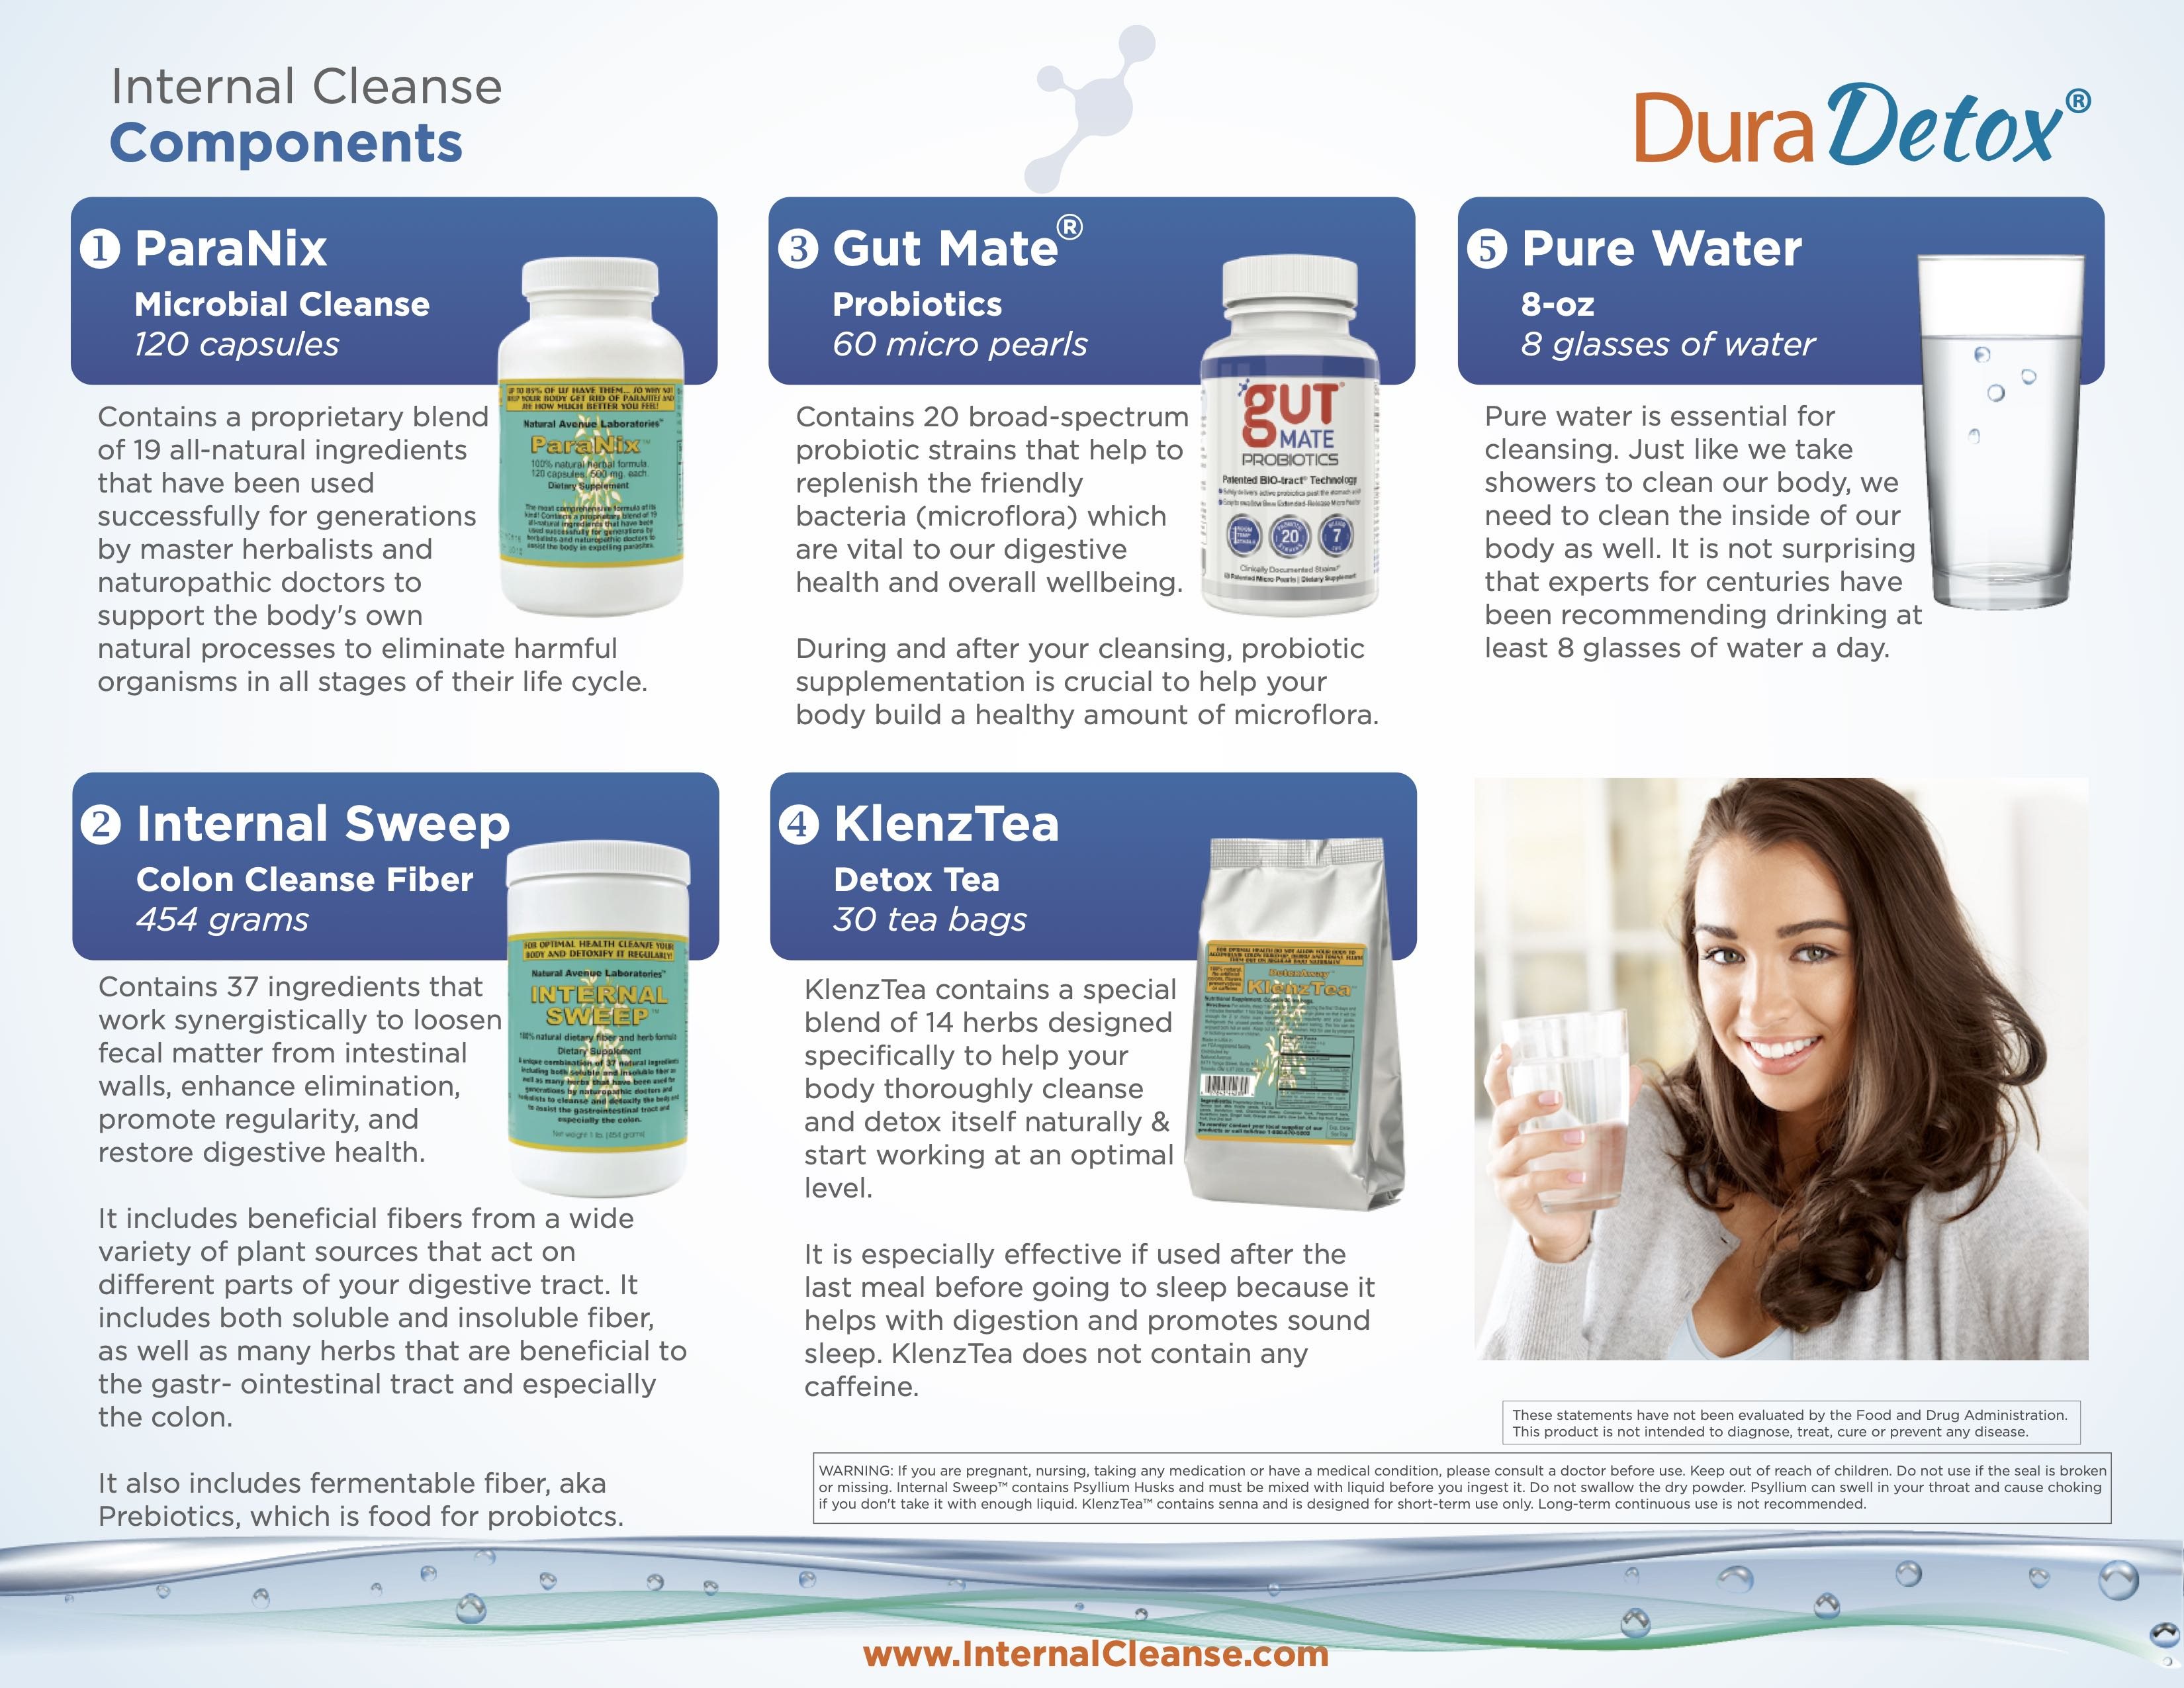 duradetox-cleanse-guide-page-1.jpg